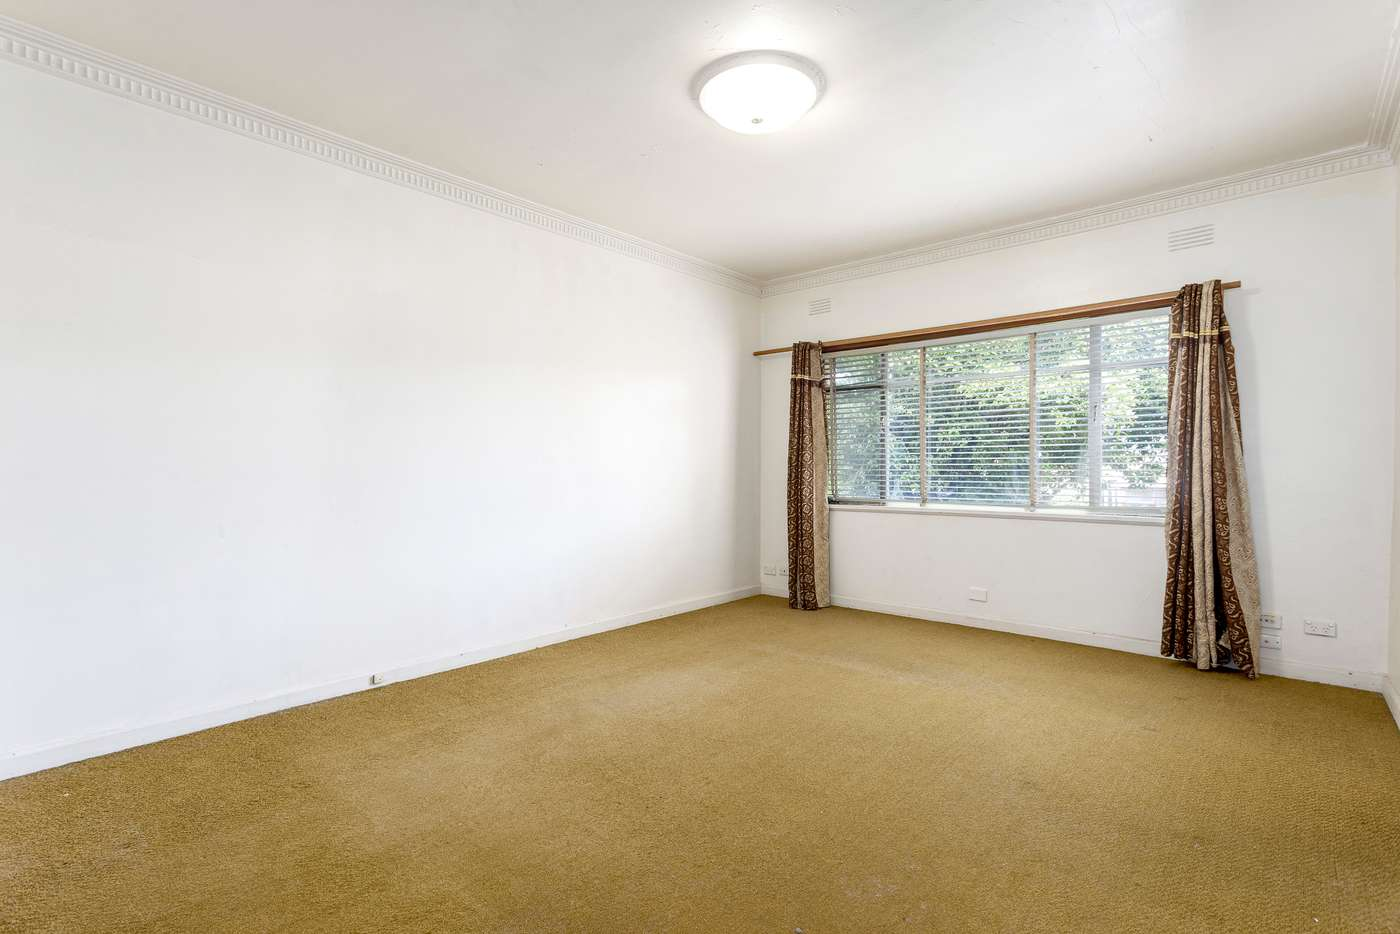 Seventh view of Homely house listing, 4 Latrobe Street, Box Hill South VIC 3128